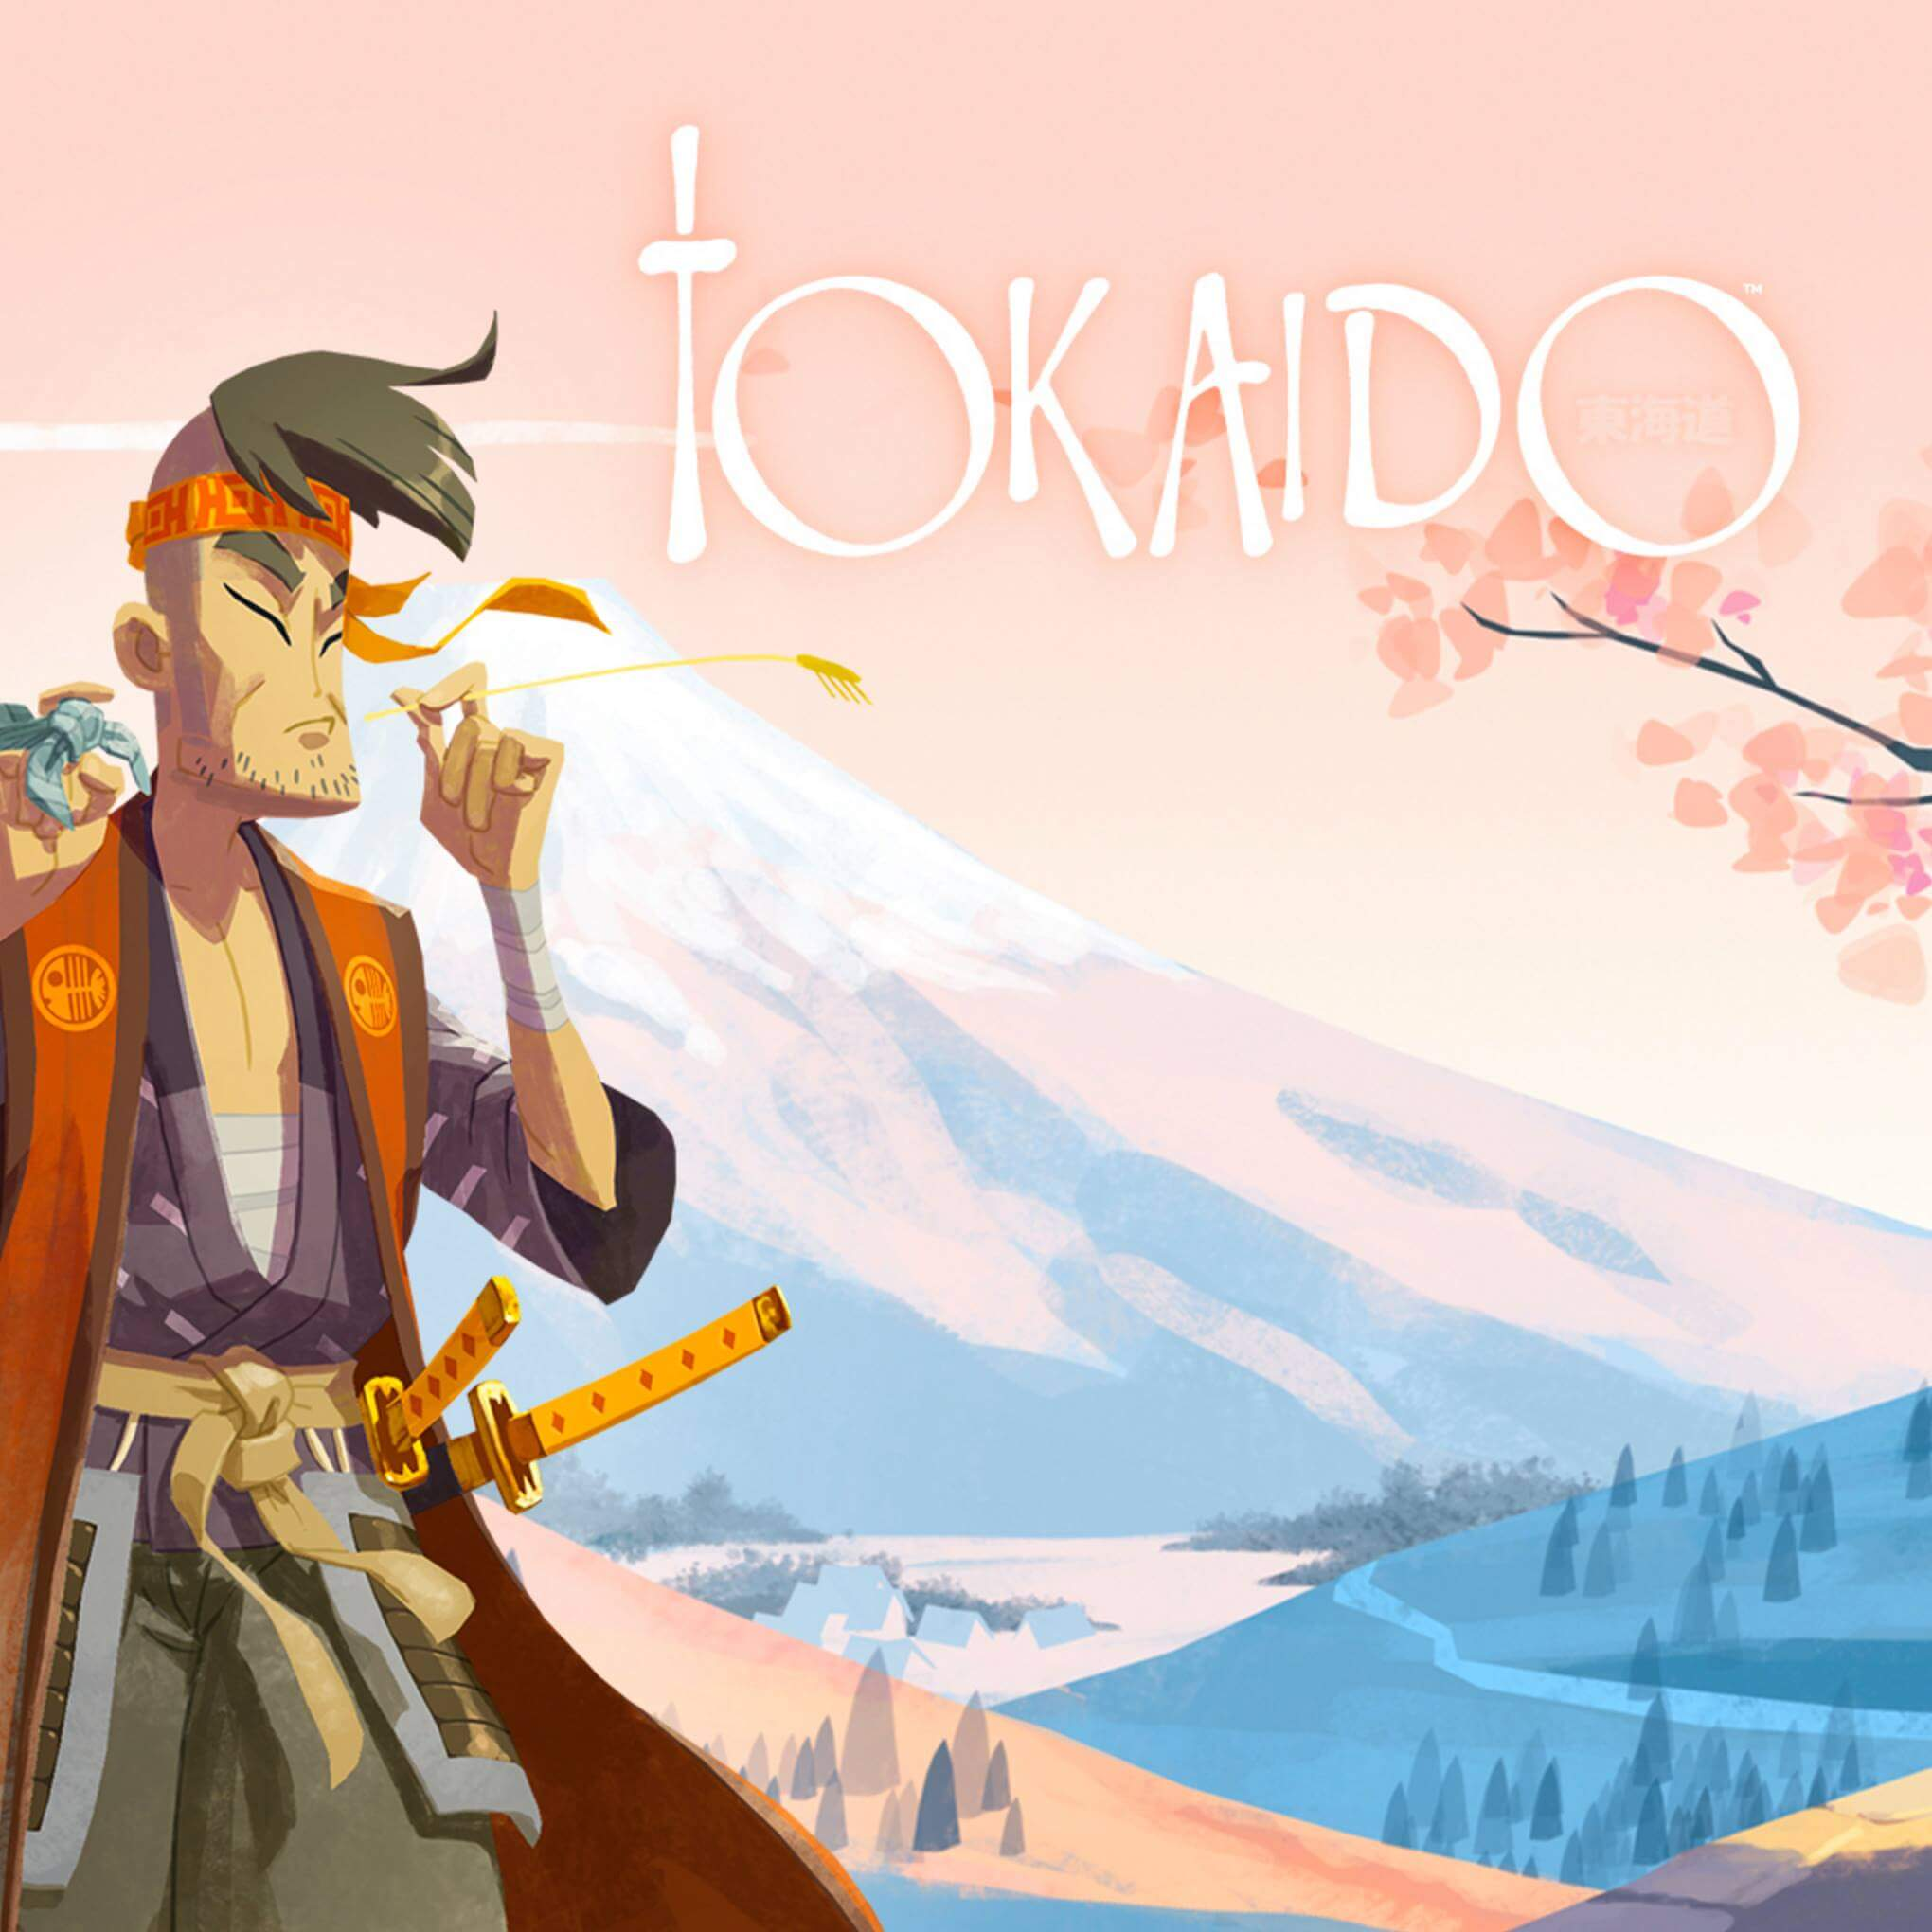 Tokaido - Application